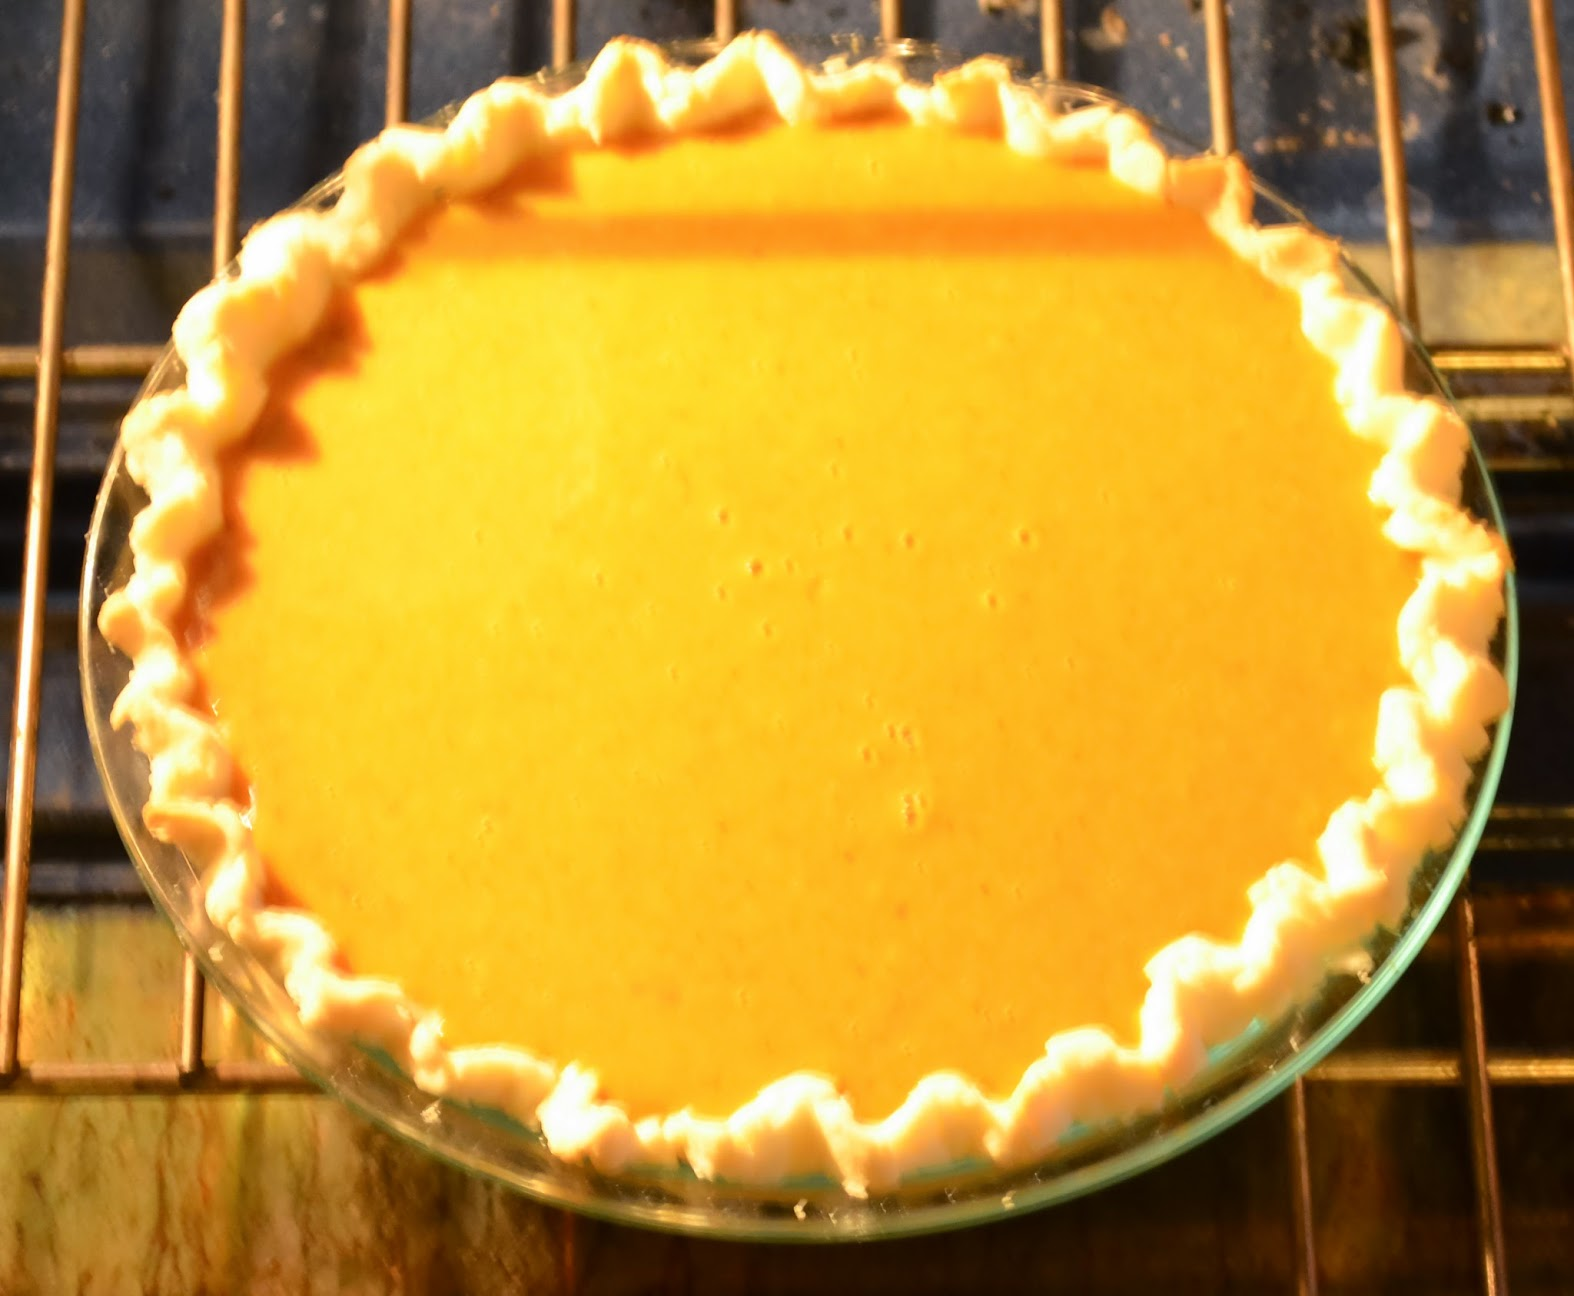 Gluten-Free-Dairy-Free-Pumpkin-Pie-With-Coconut-Whip-Cream-Bake.jpg